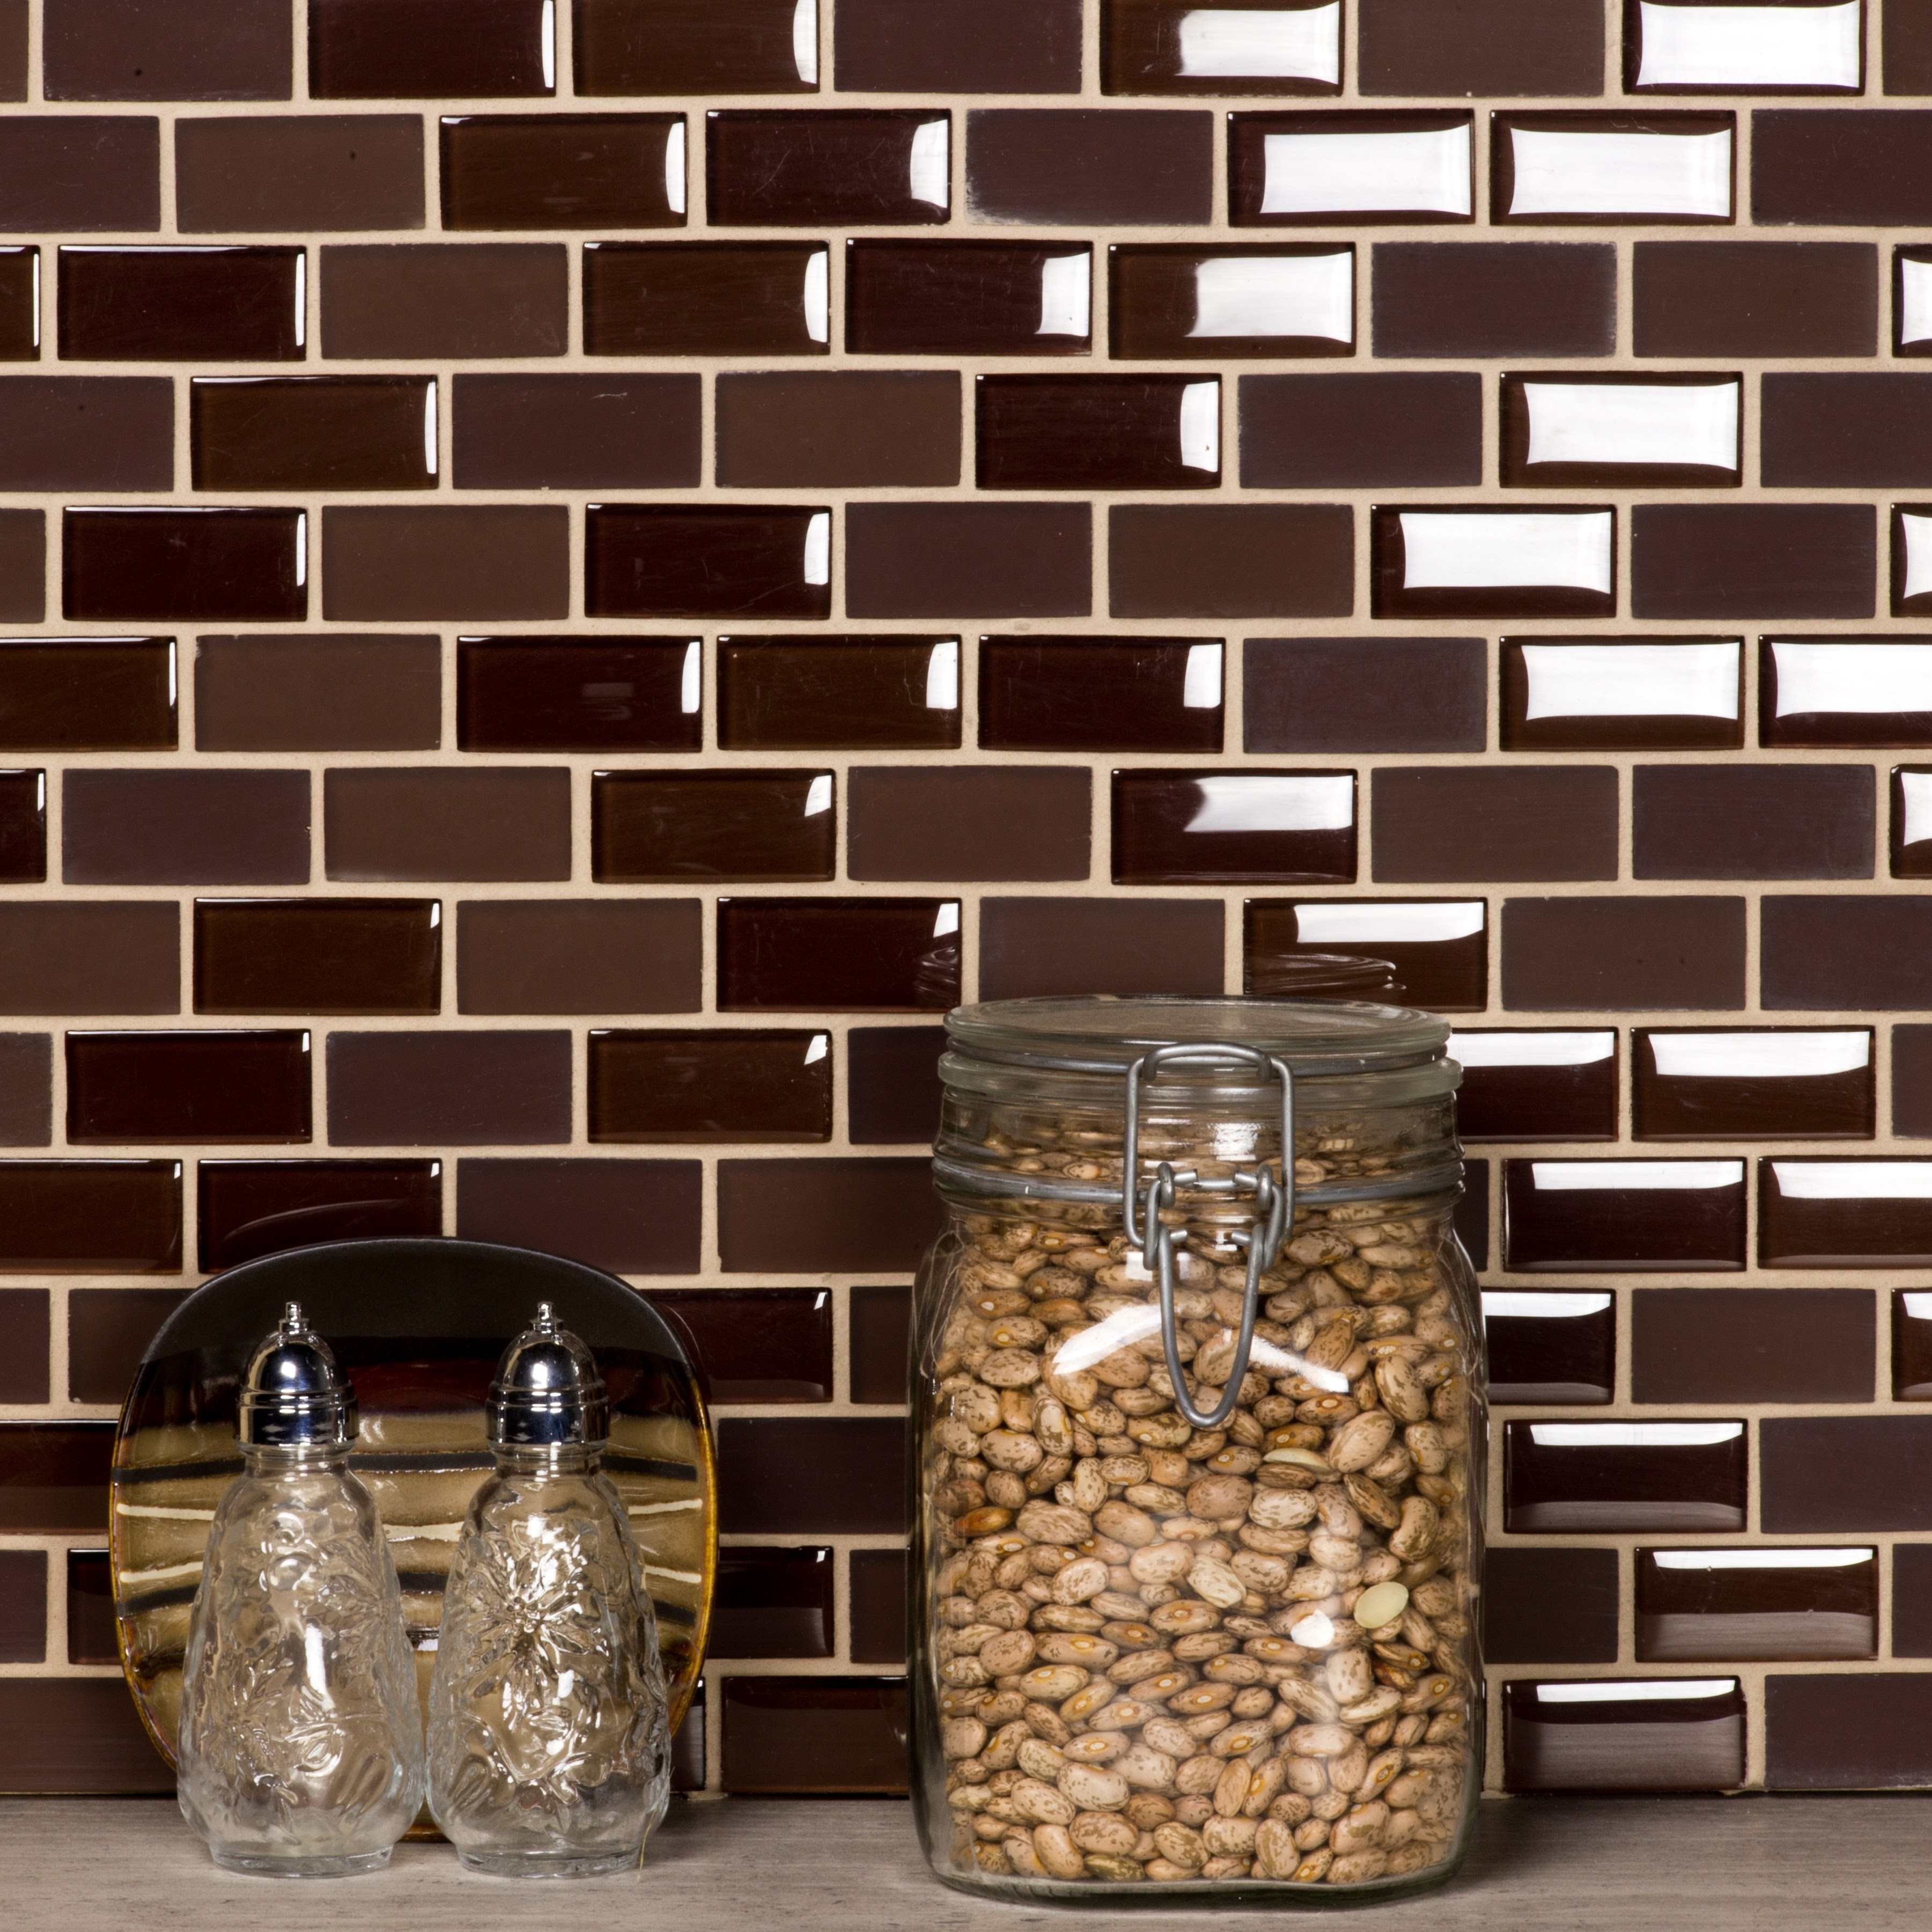 Free Flow 1 in x 2 in Glass Brick Mosaic in COFFEE Blend